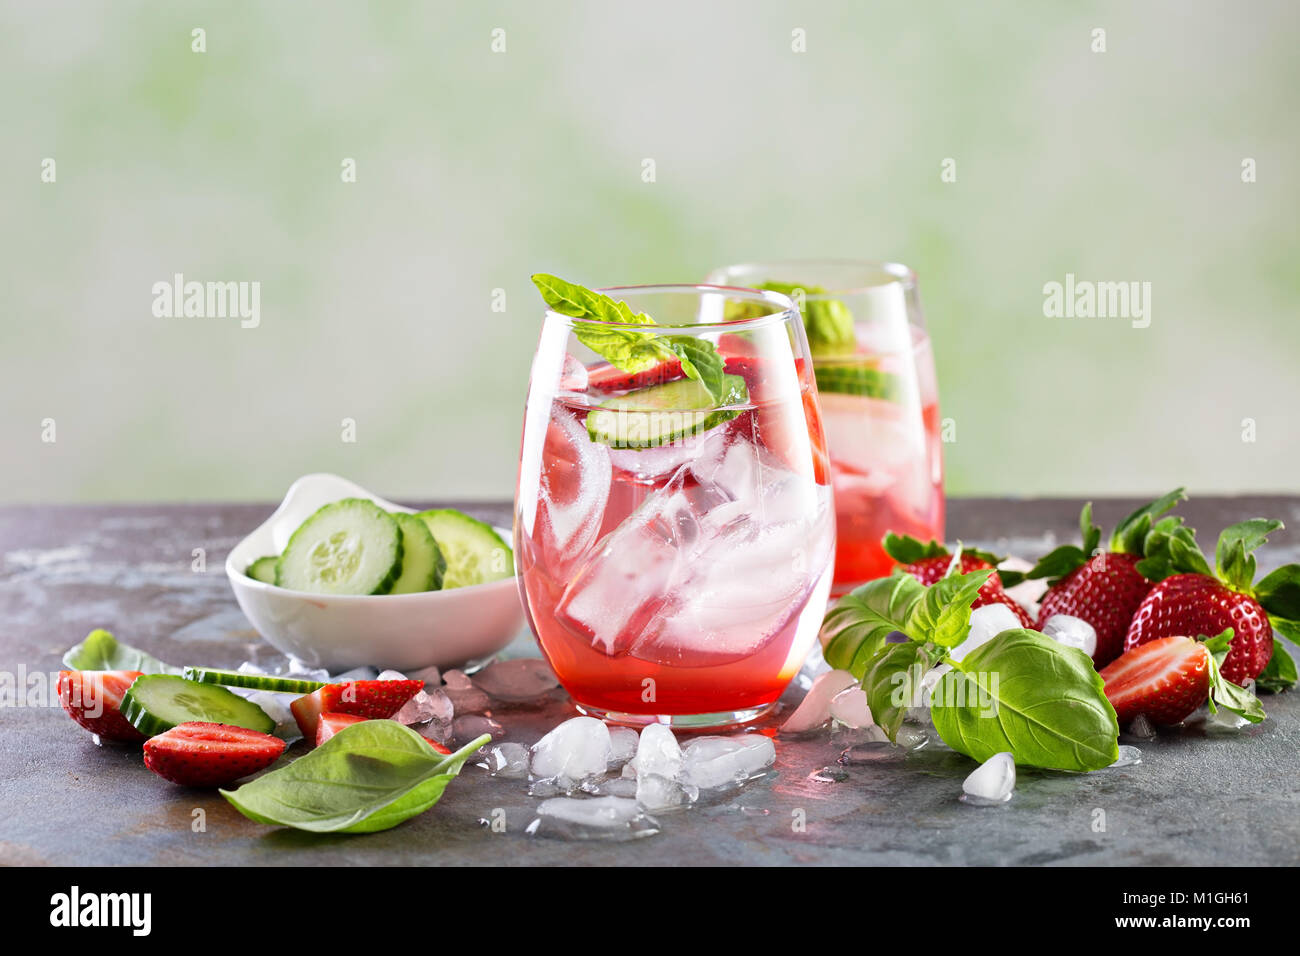 Refreshing spring or summer cocktails with strawberry, basil and cucumber - Stock Image